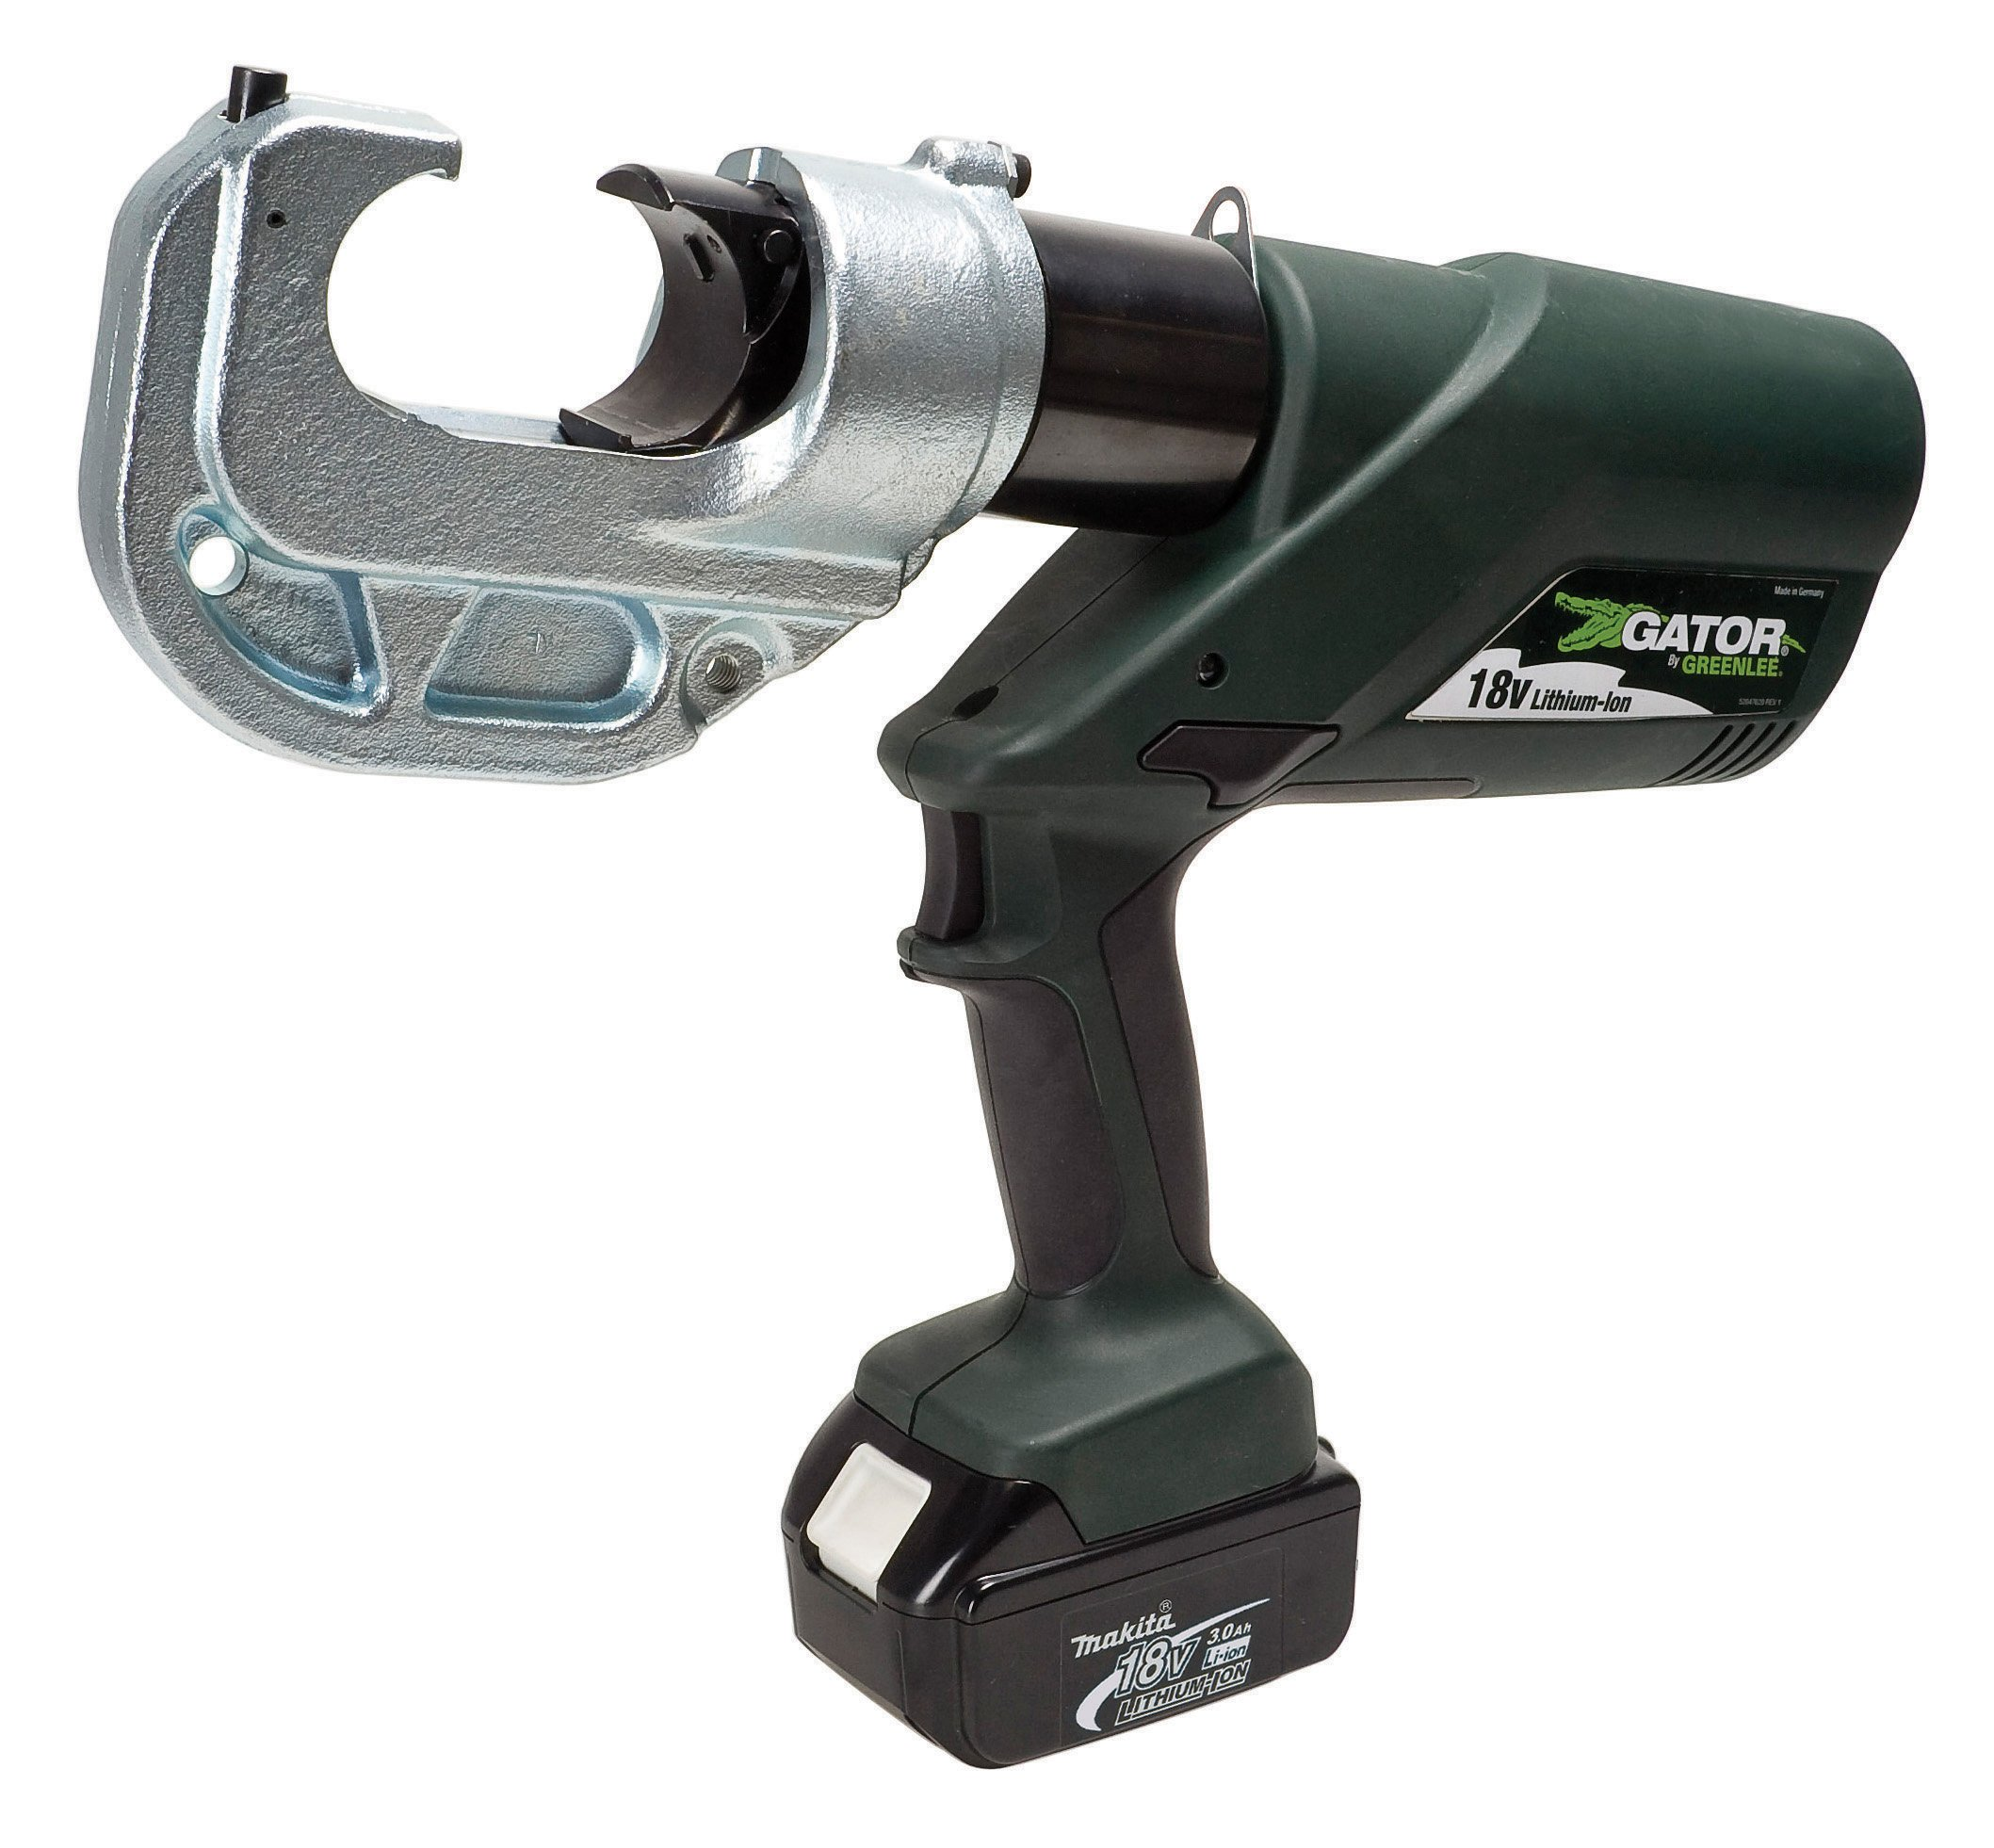 Greenlee EK1240KL11 Gator Battery-Powered 12 Ton Kearney Head Crimping Tool with 120-Volt Charger